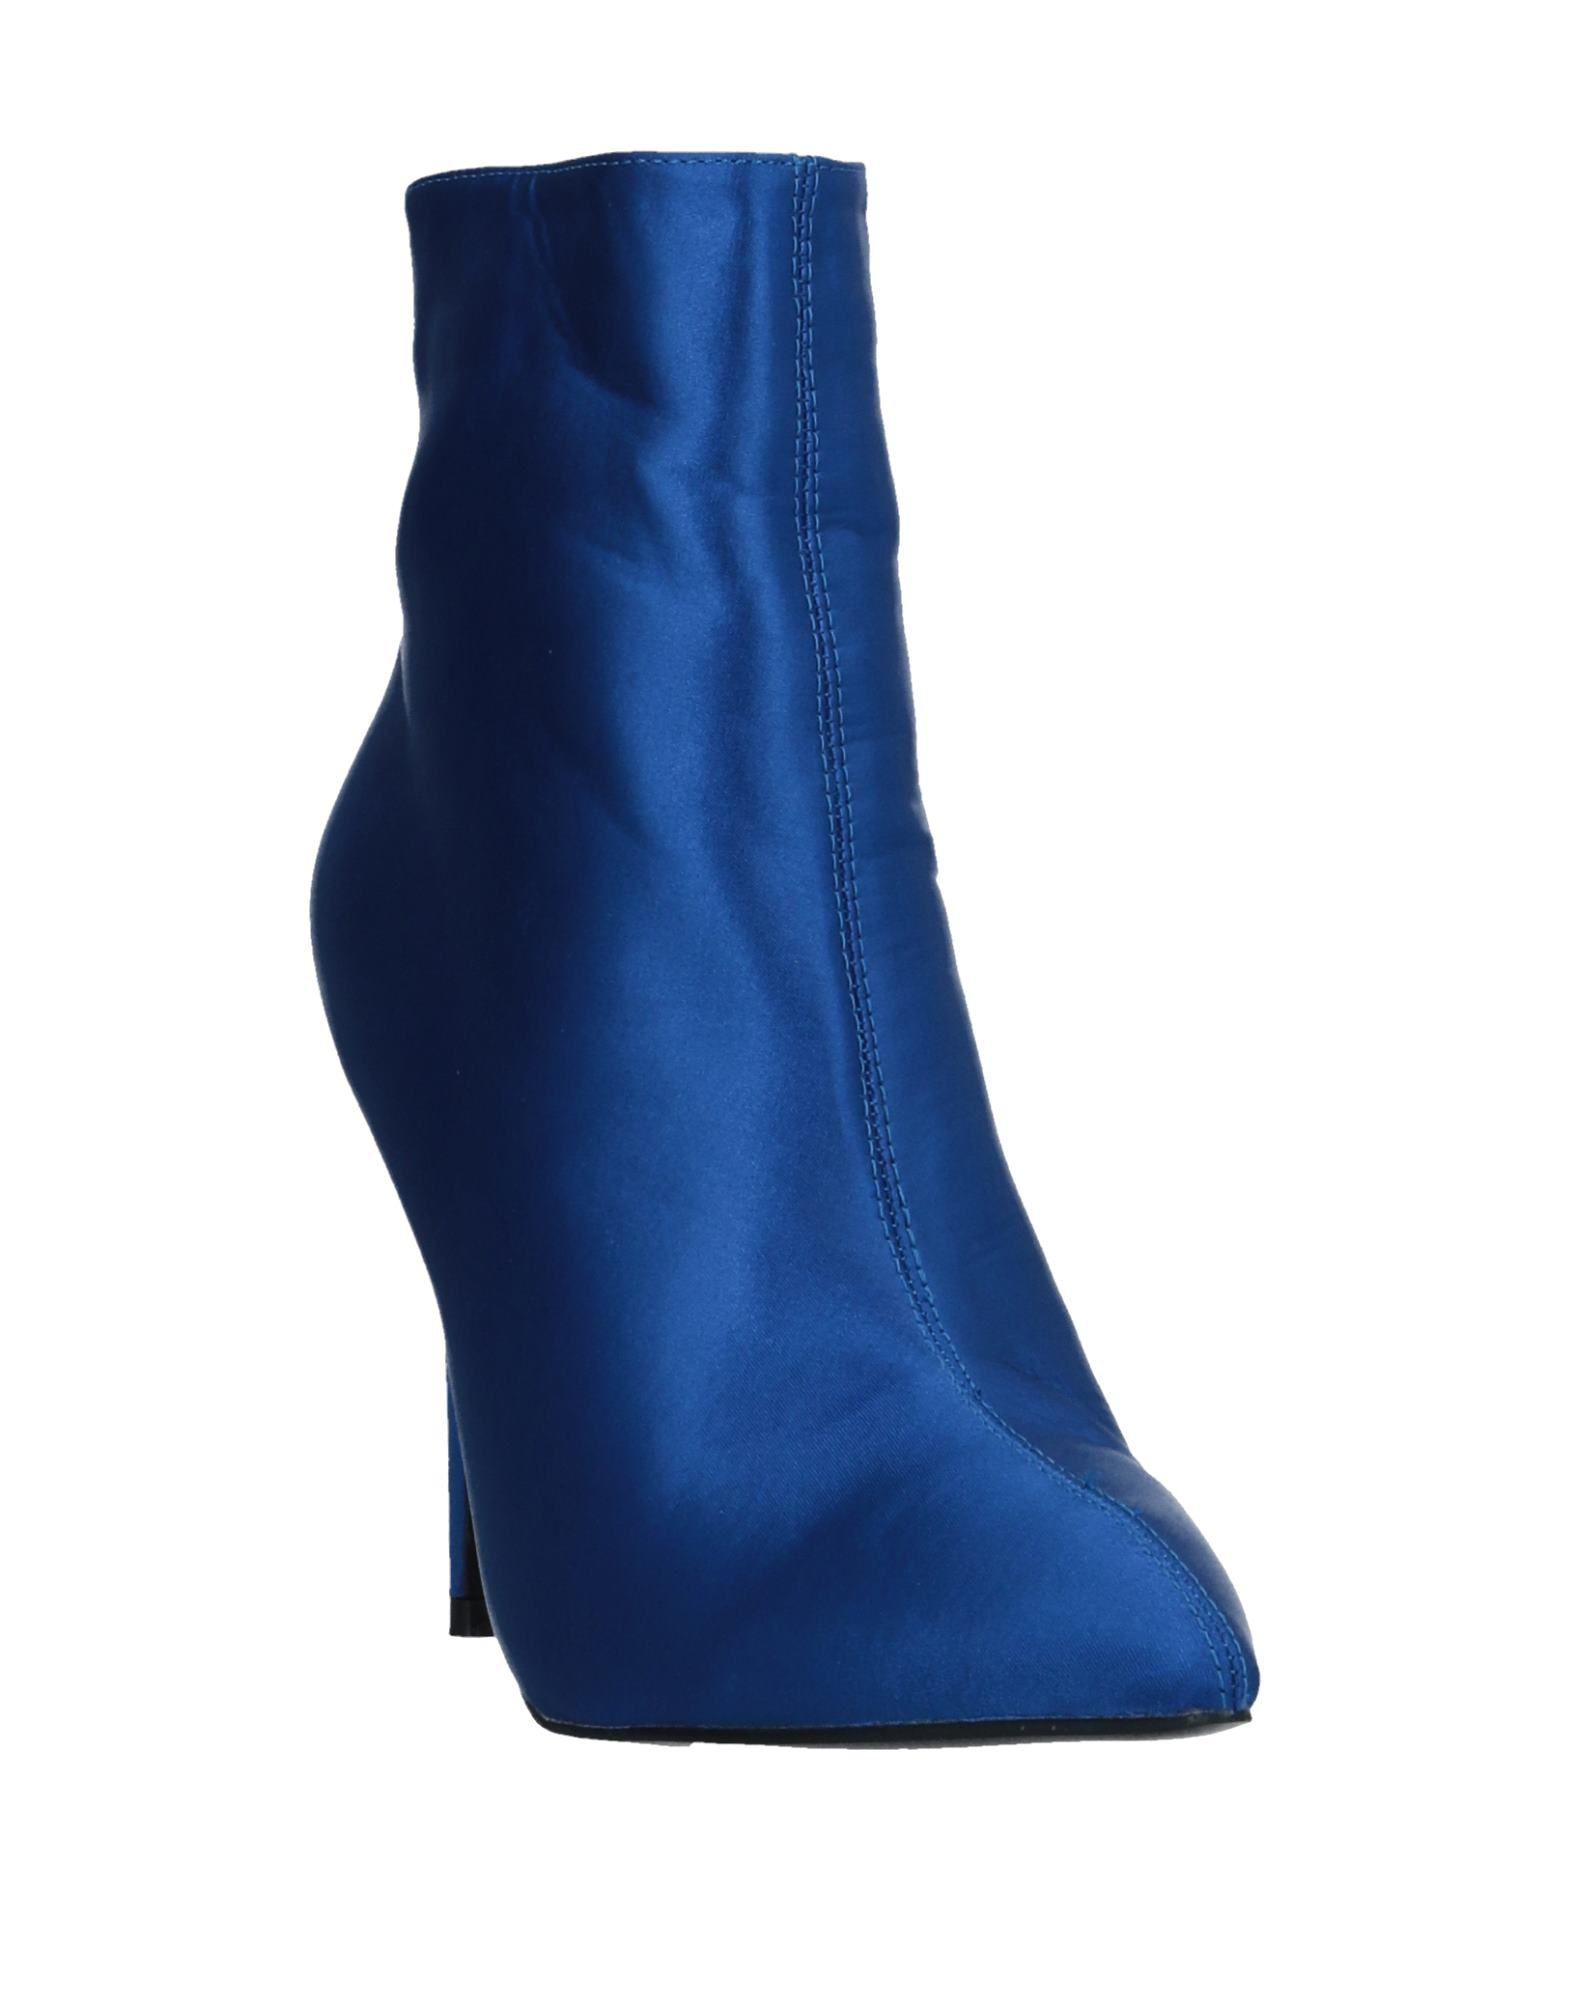 Public Desire Satin Ankle Boots in Bright Blue (Blue)